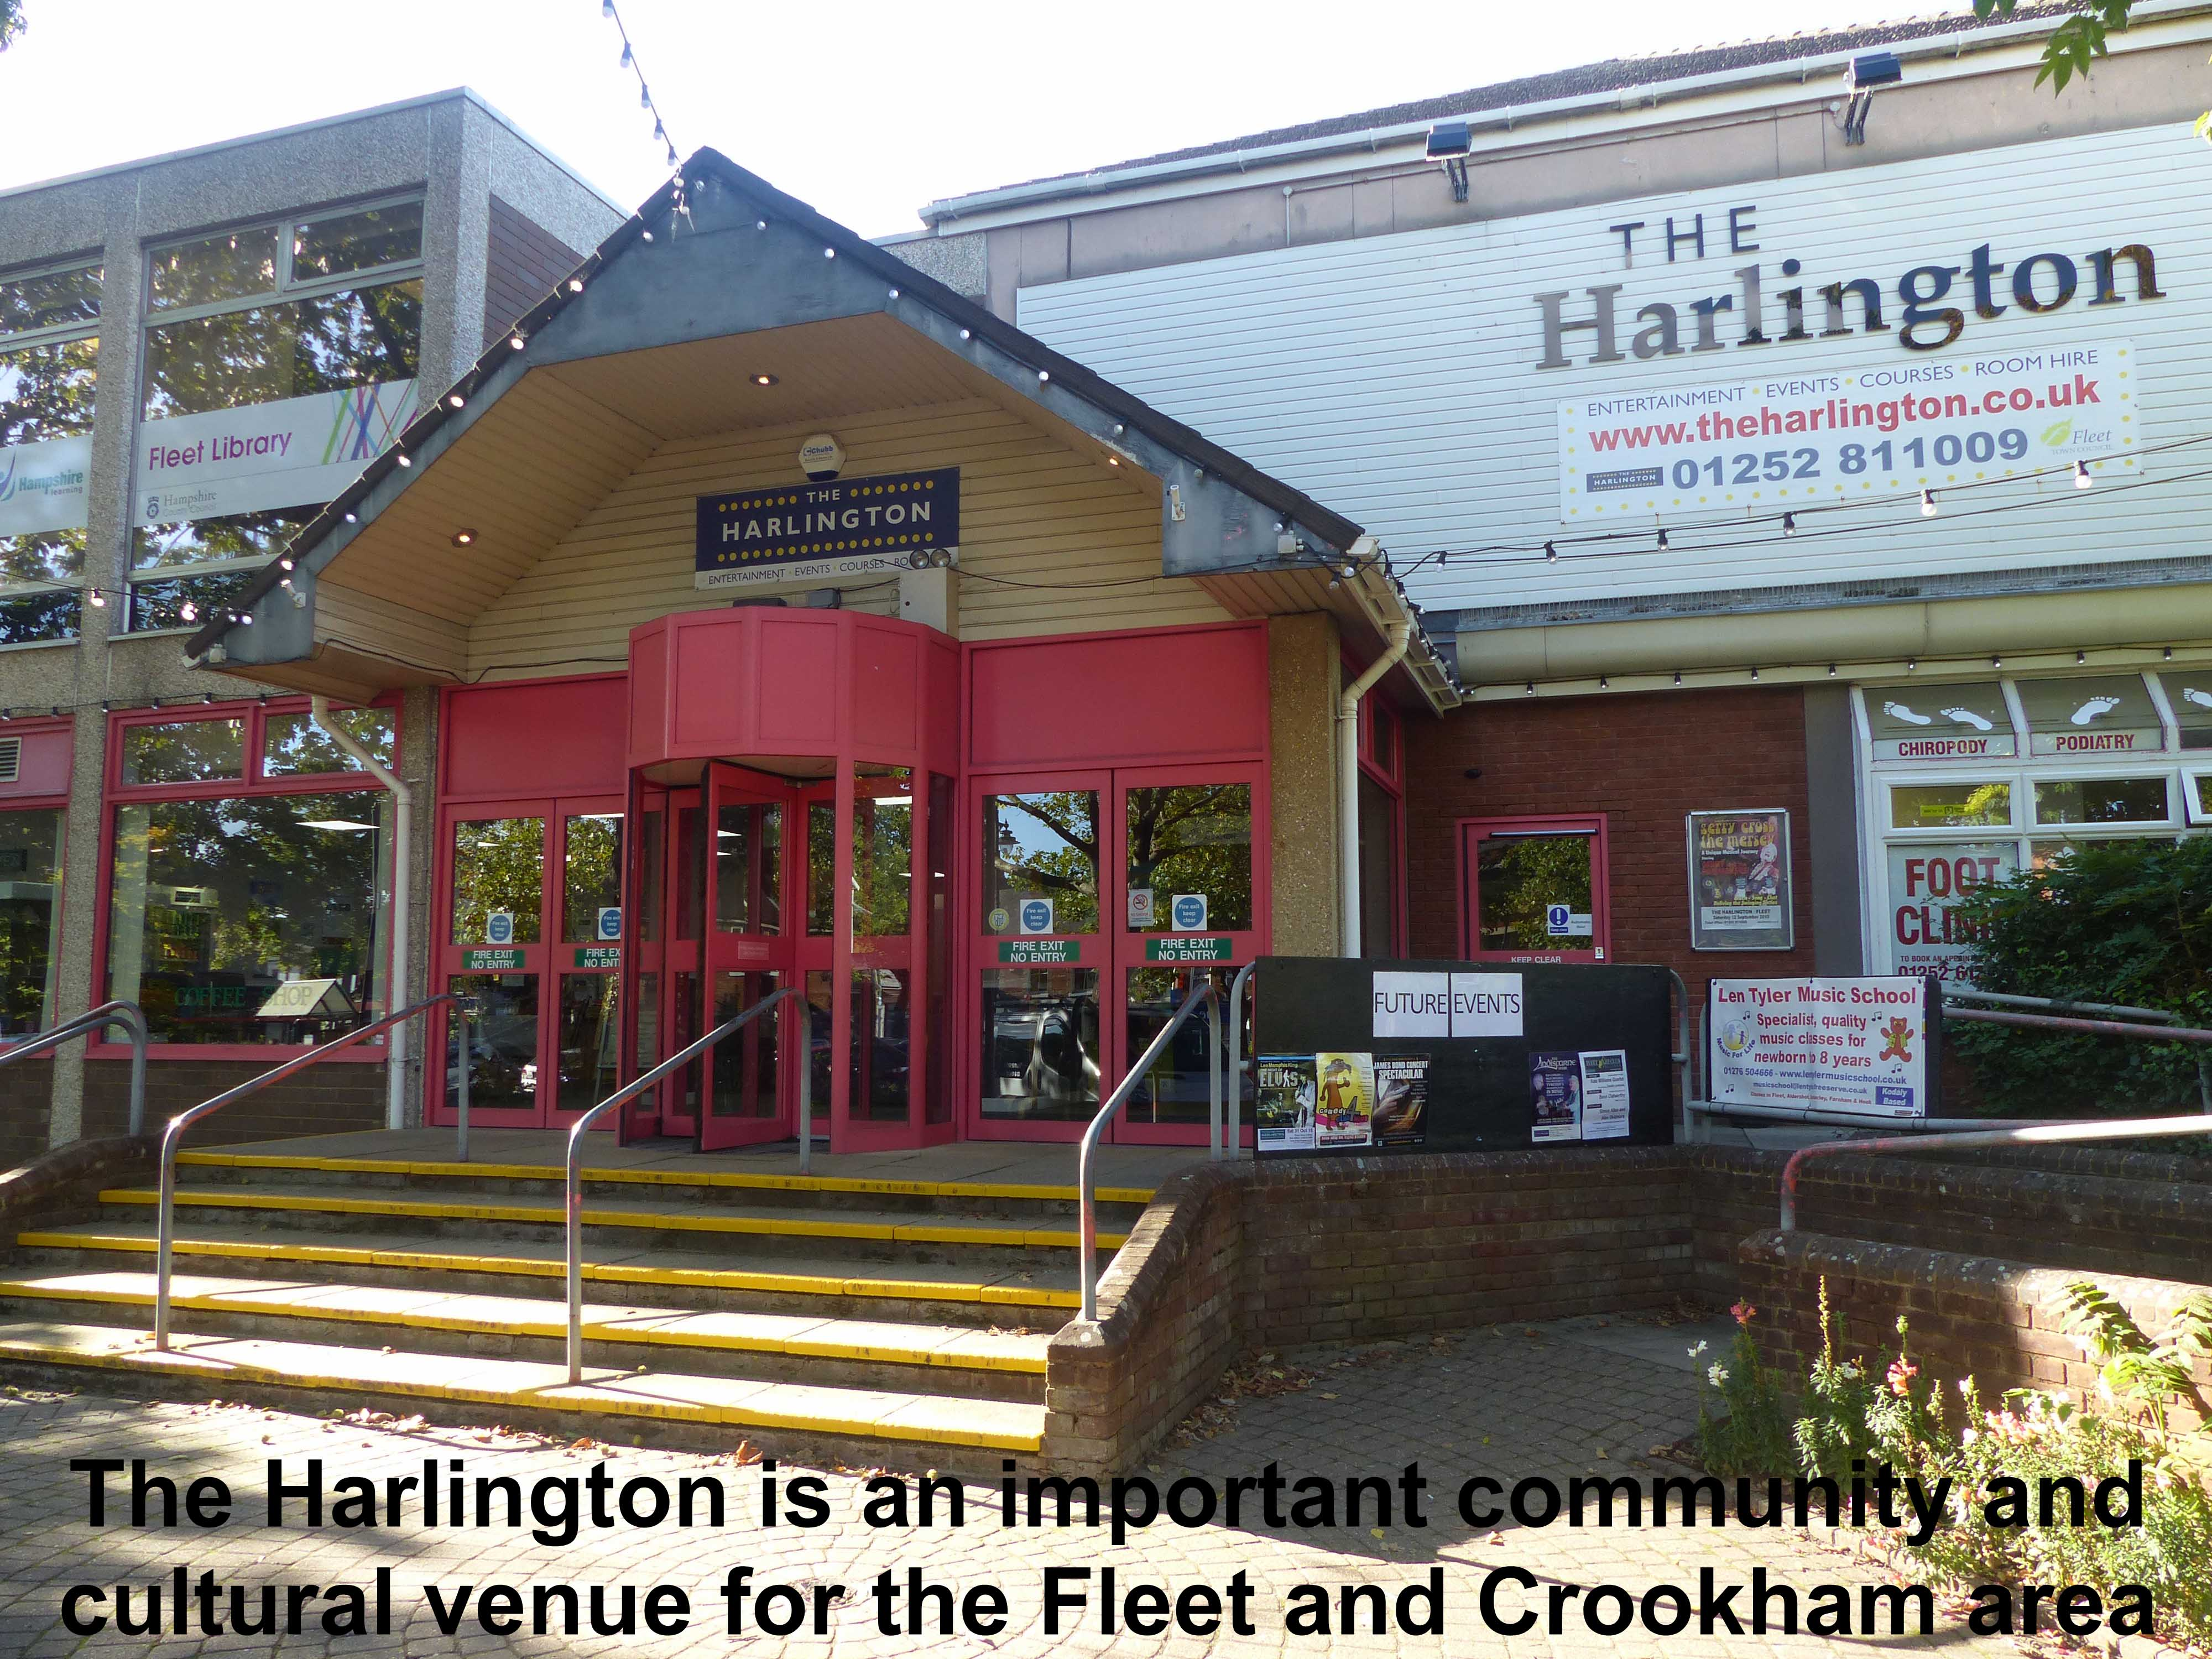 The Harlington is an important community and cultural venue for the Fleet and Crookham area